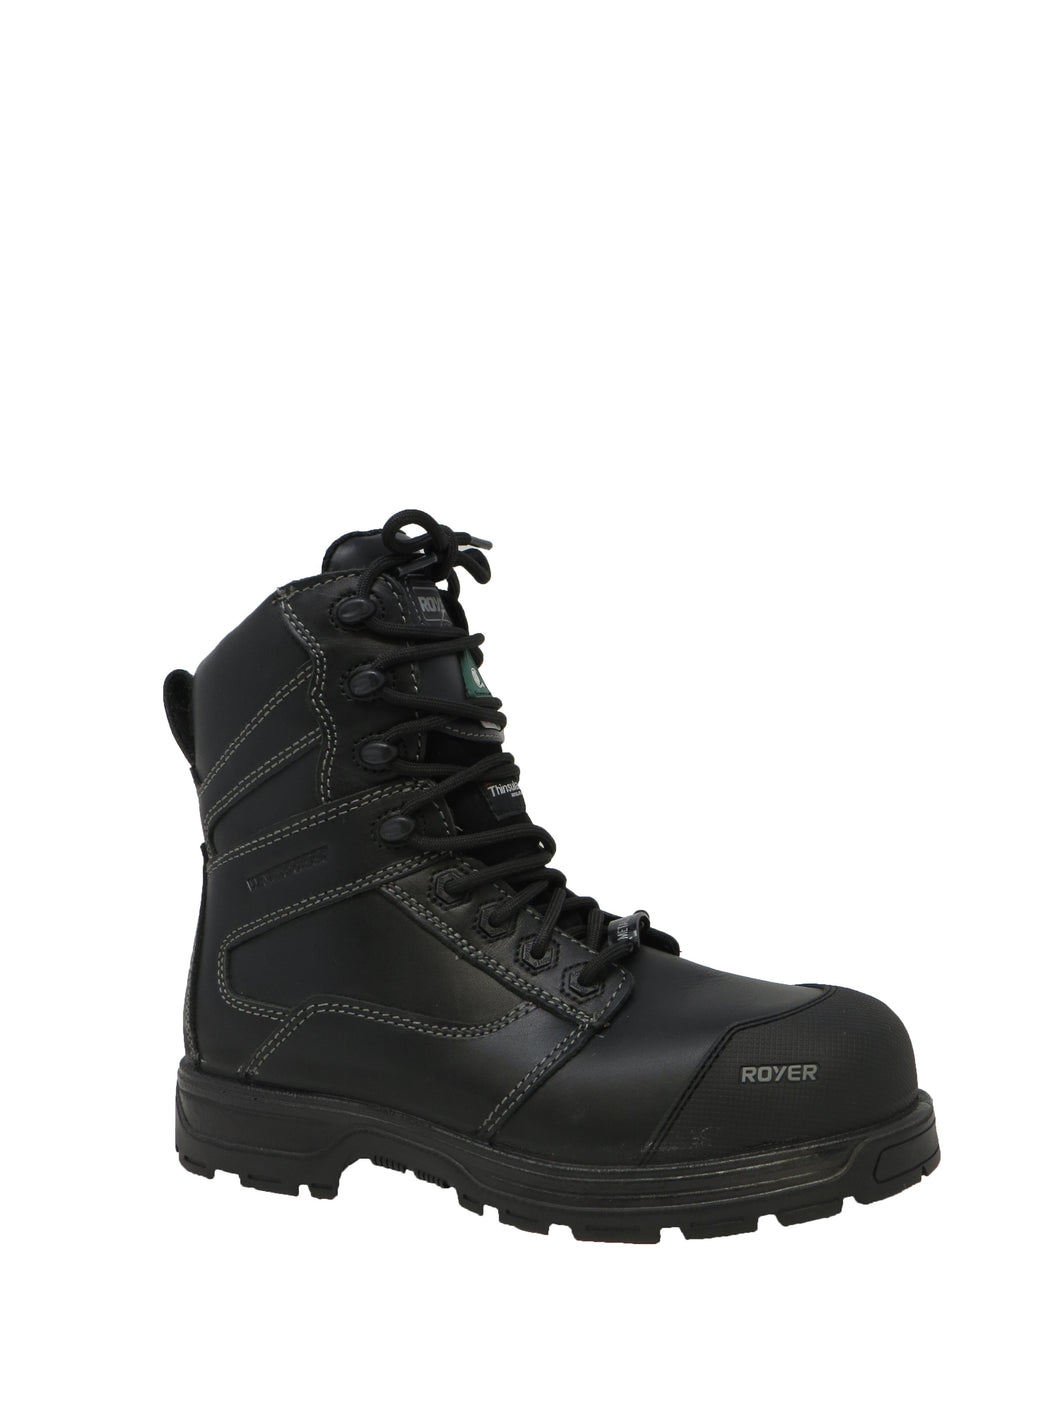 Royer | 5707AG | Arctic Grip Work Boot | Black